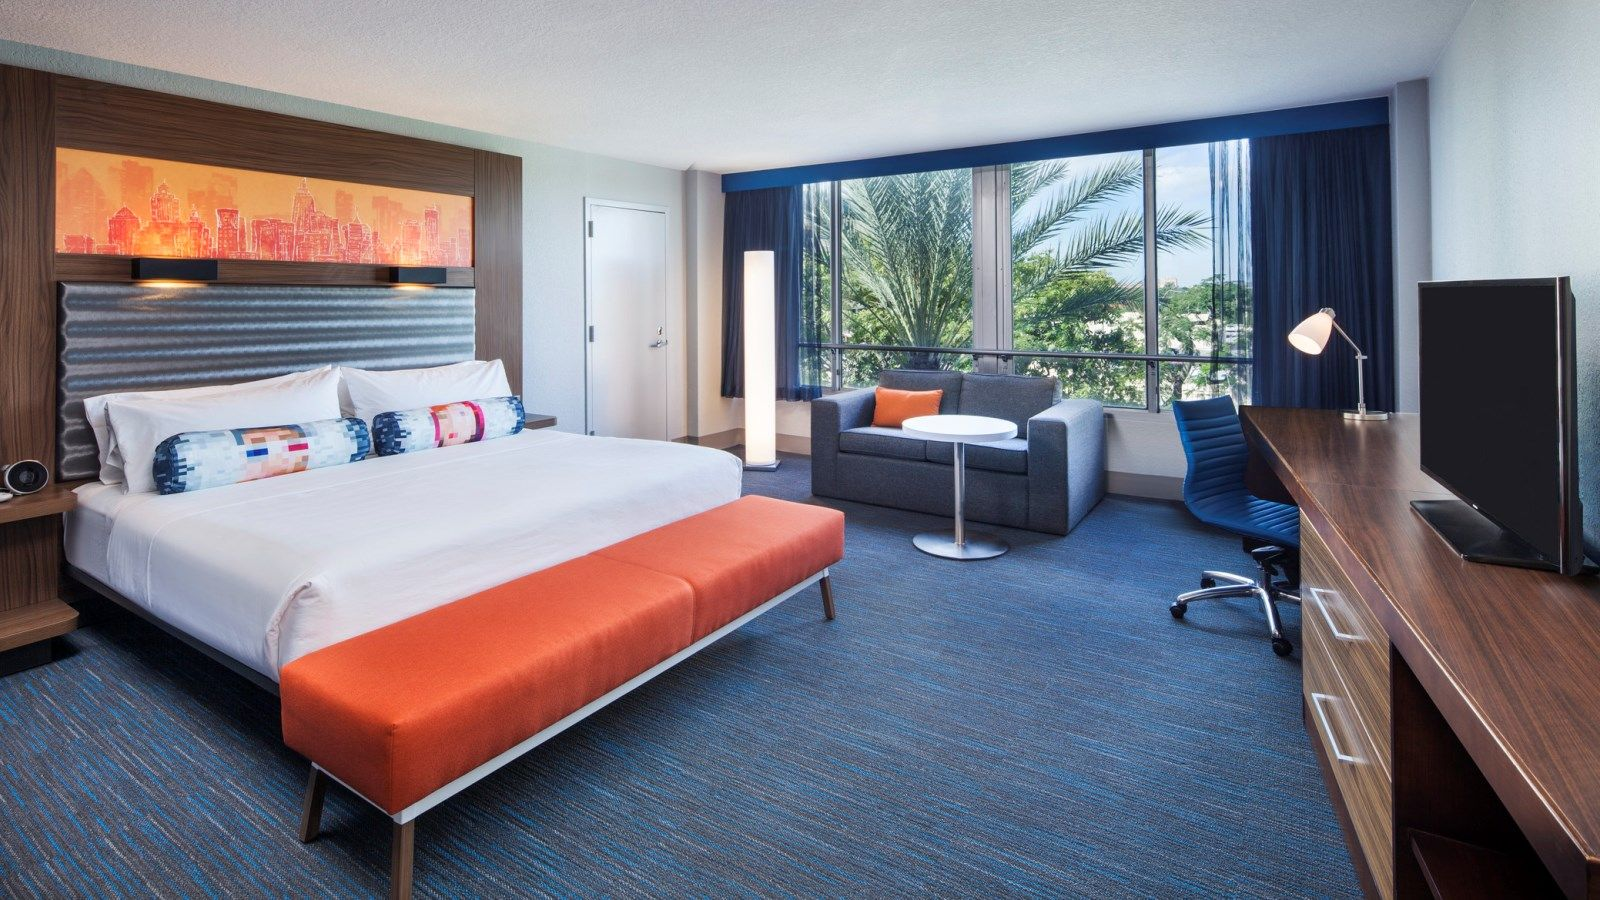 Miami Accommodations - Savvy Suite